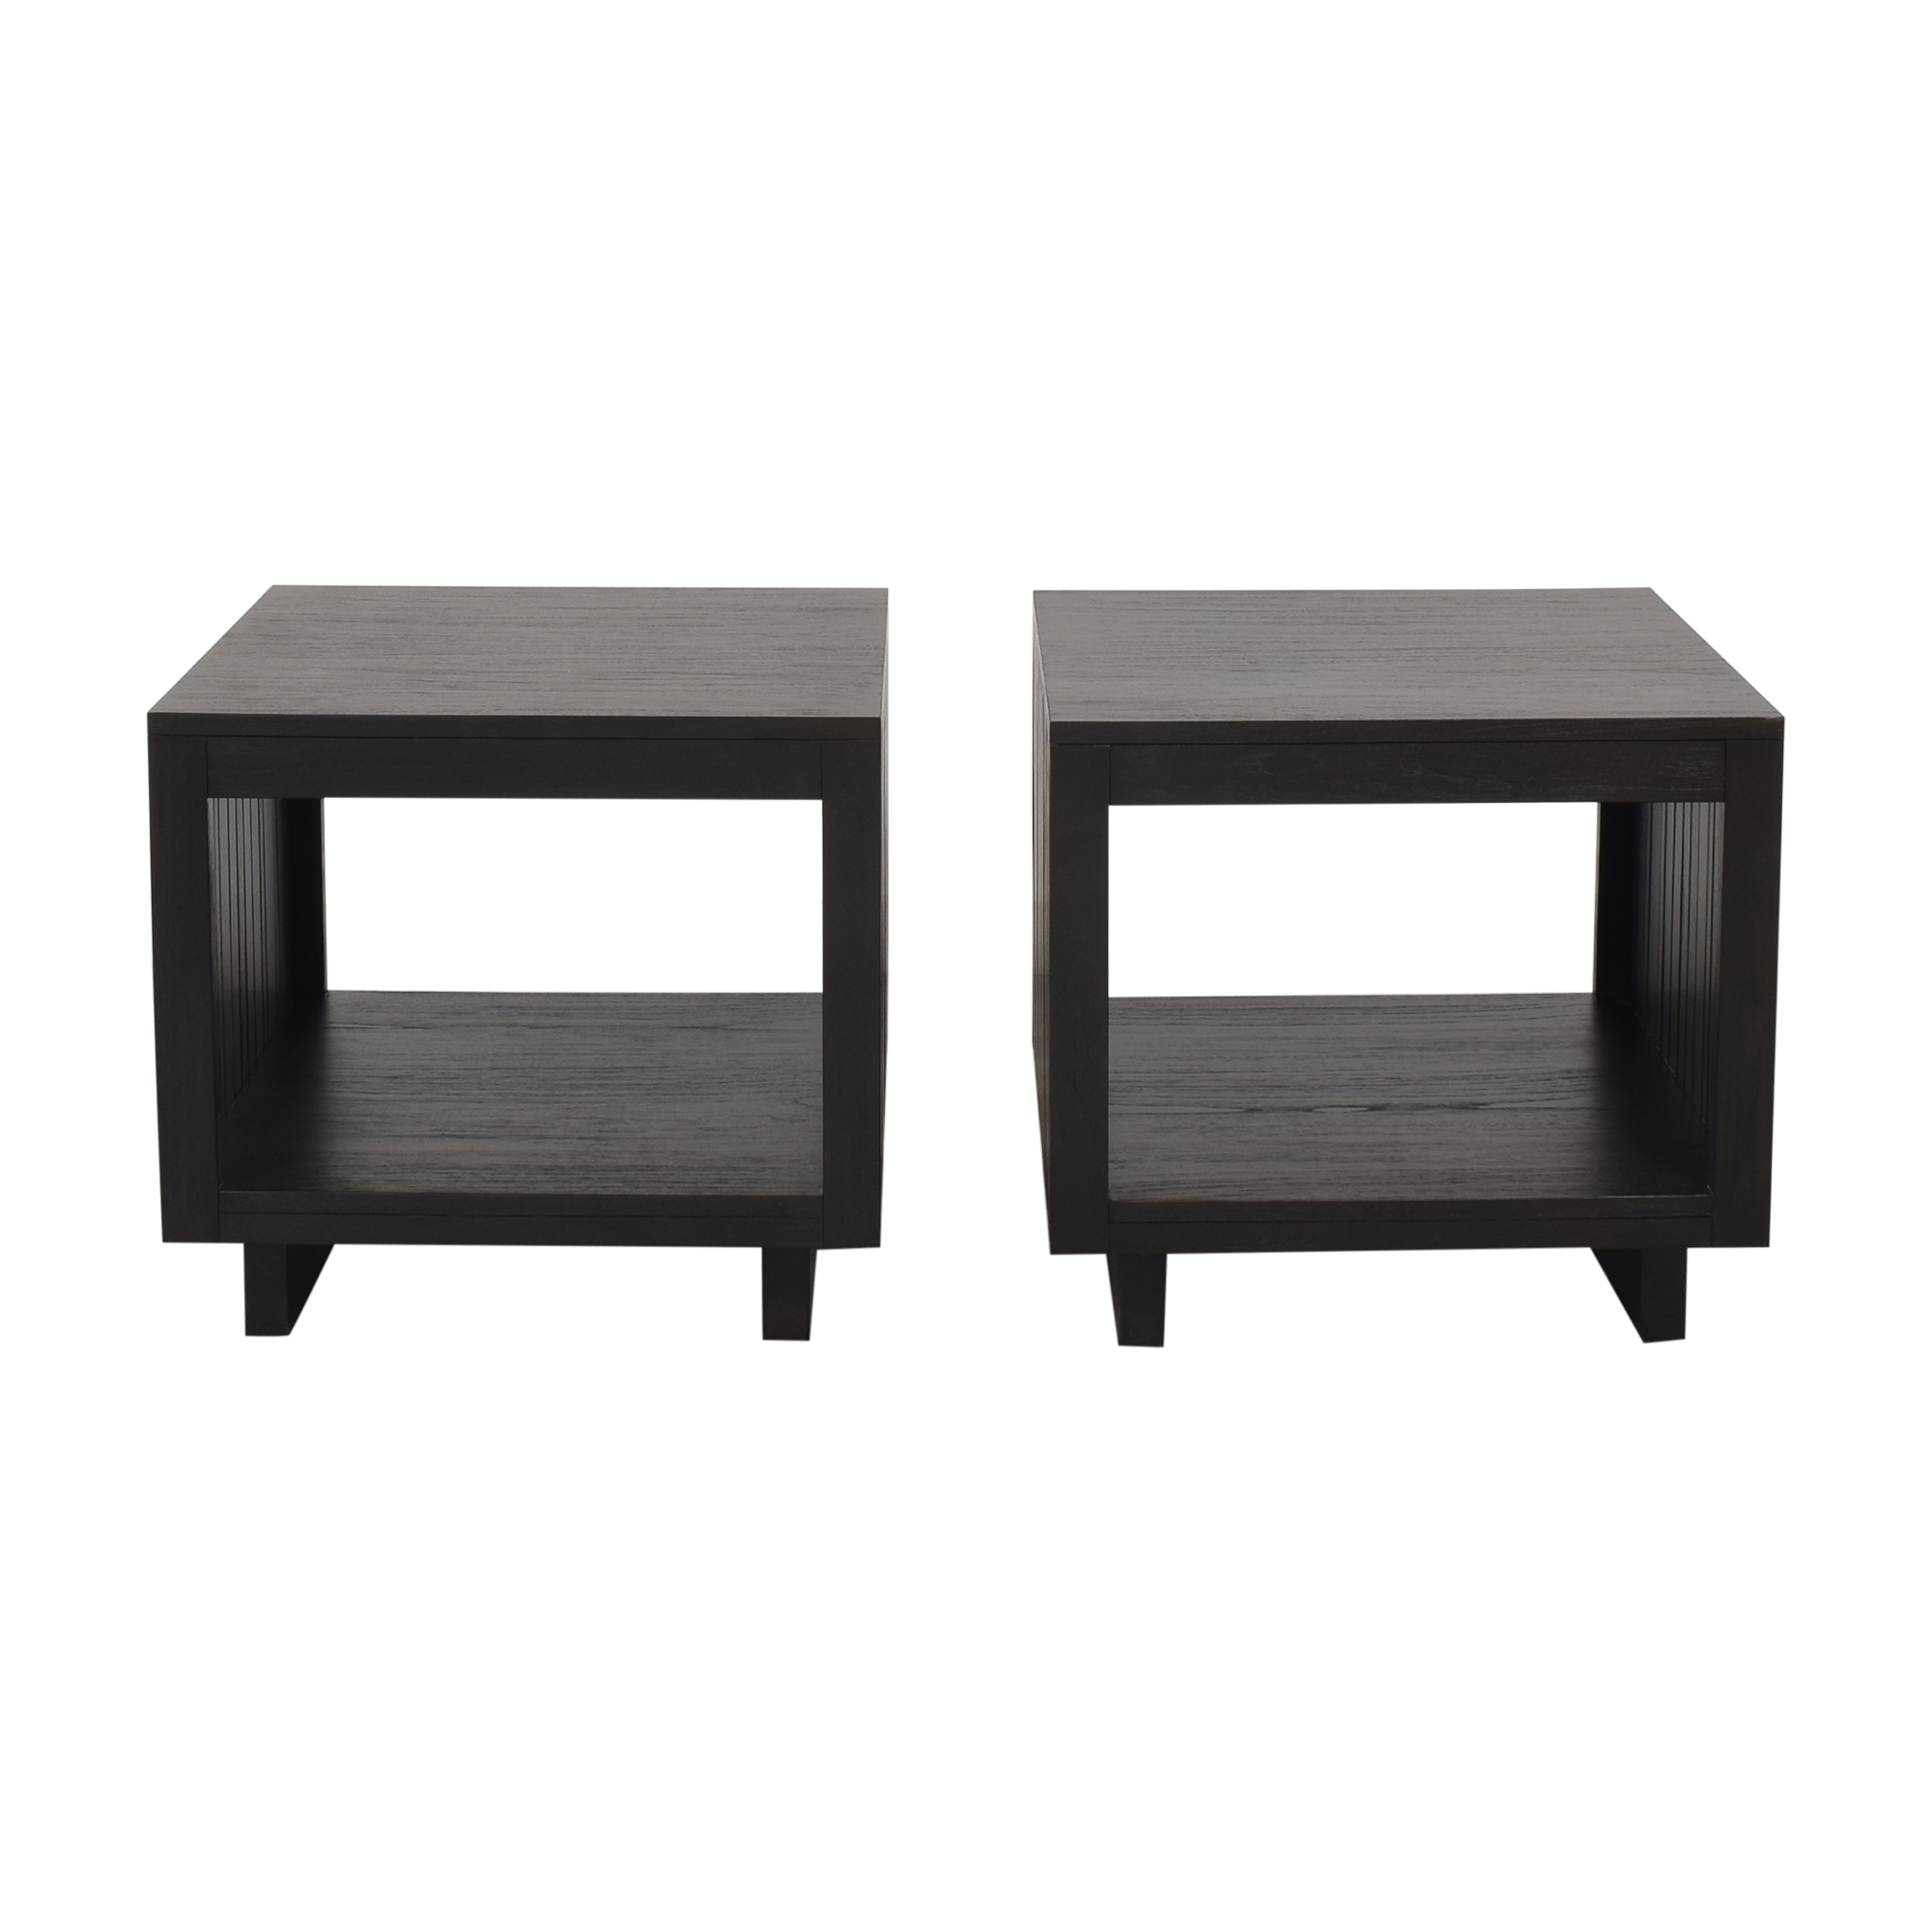 Brownstone Furniture Brownstone Furniture Messina Side Tables used